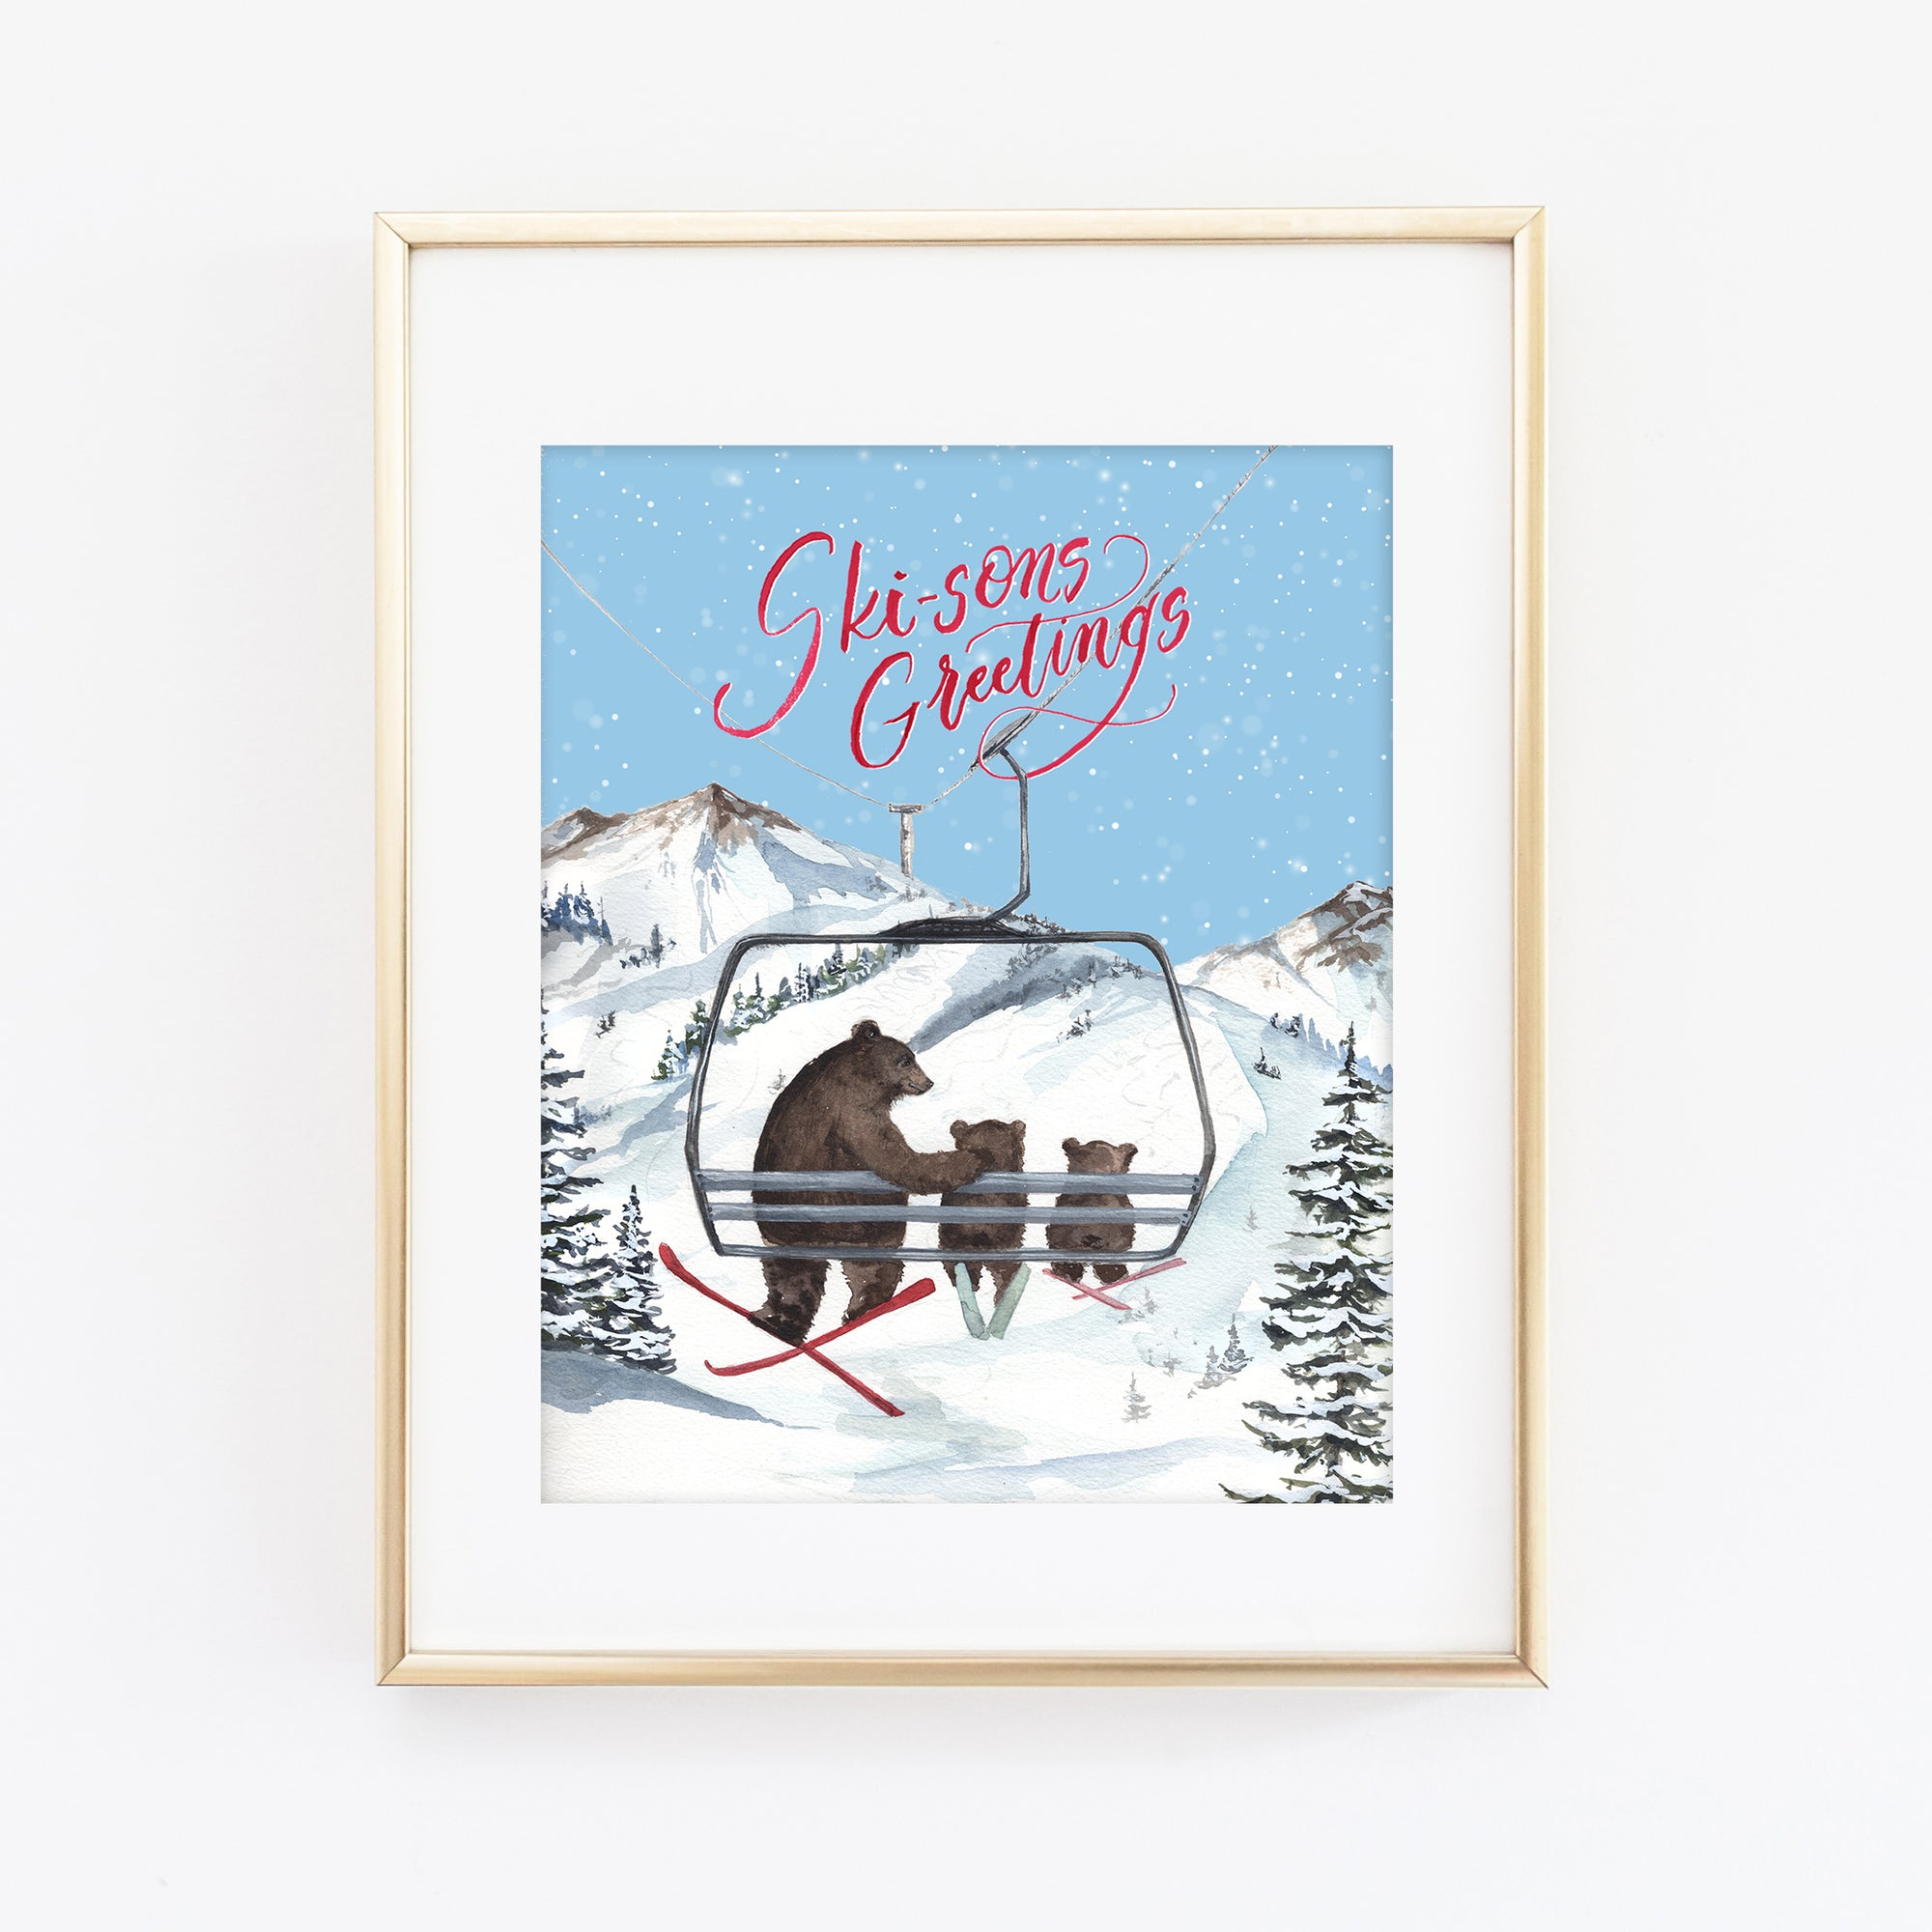 Ski-sons Greetings Art Print